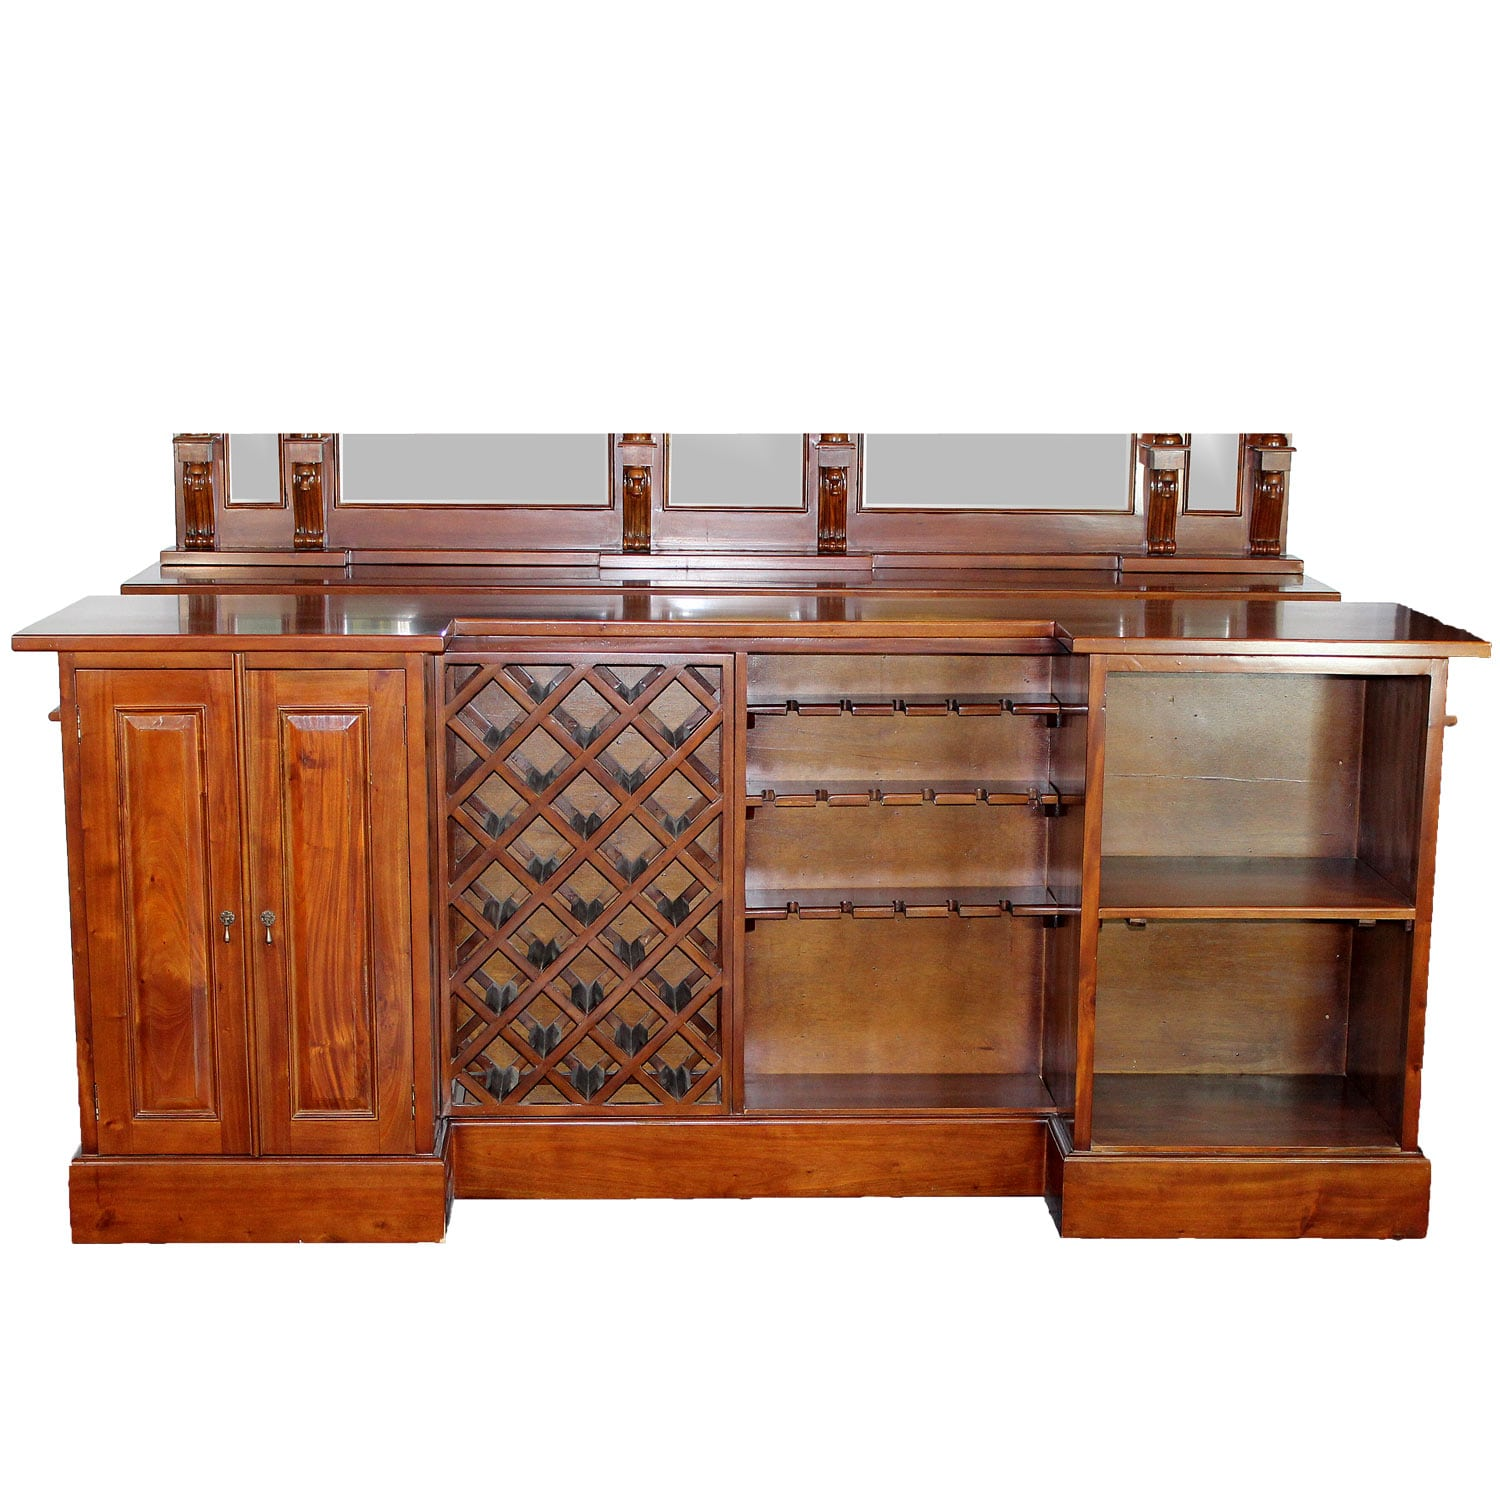 dresser baker of chest wood michael for sale vintage furniture chairish old dressers drawers taylor used collection traditional